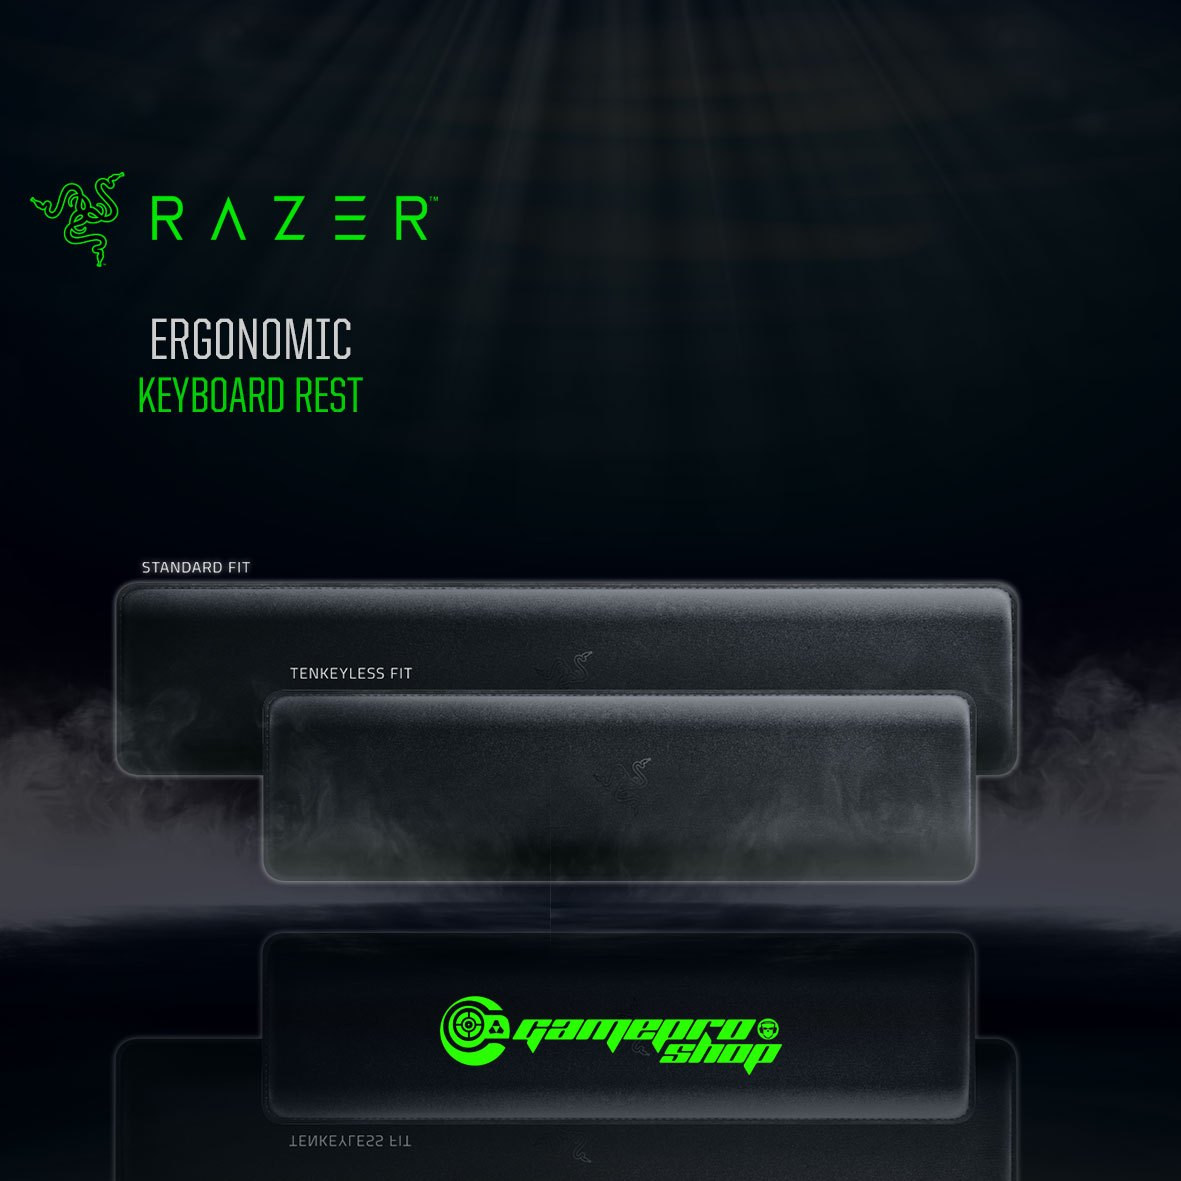 f2ac5decd5a Razer Ergonomic Keyboard Rest - FRML Packaging - GamePro Shop